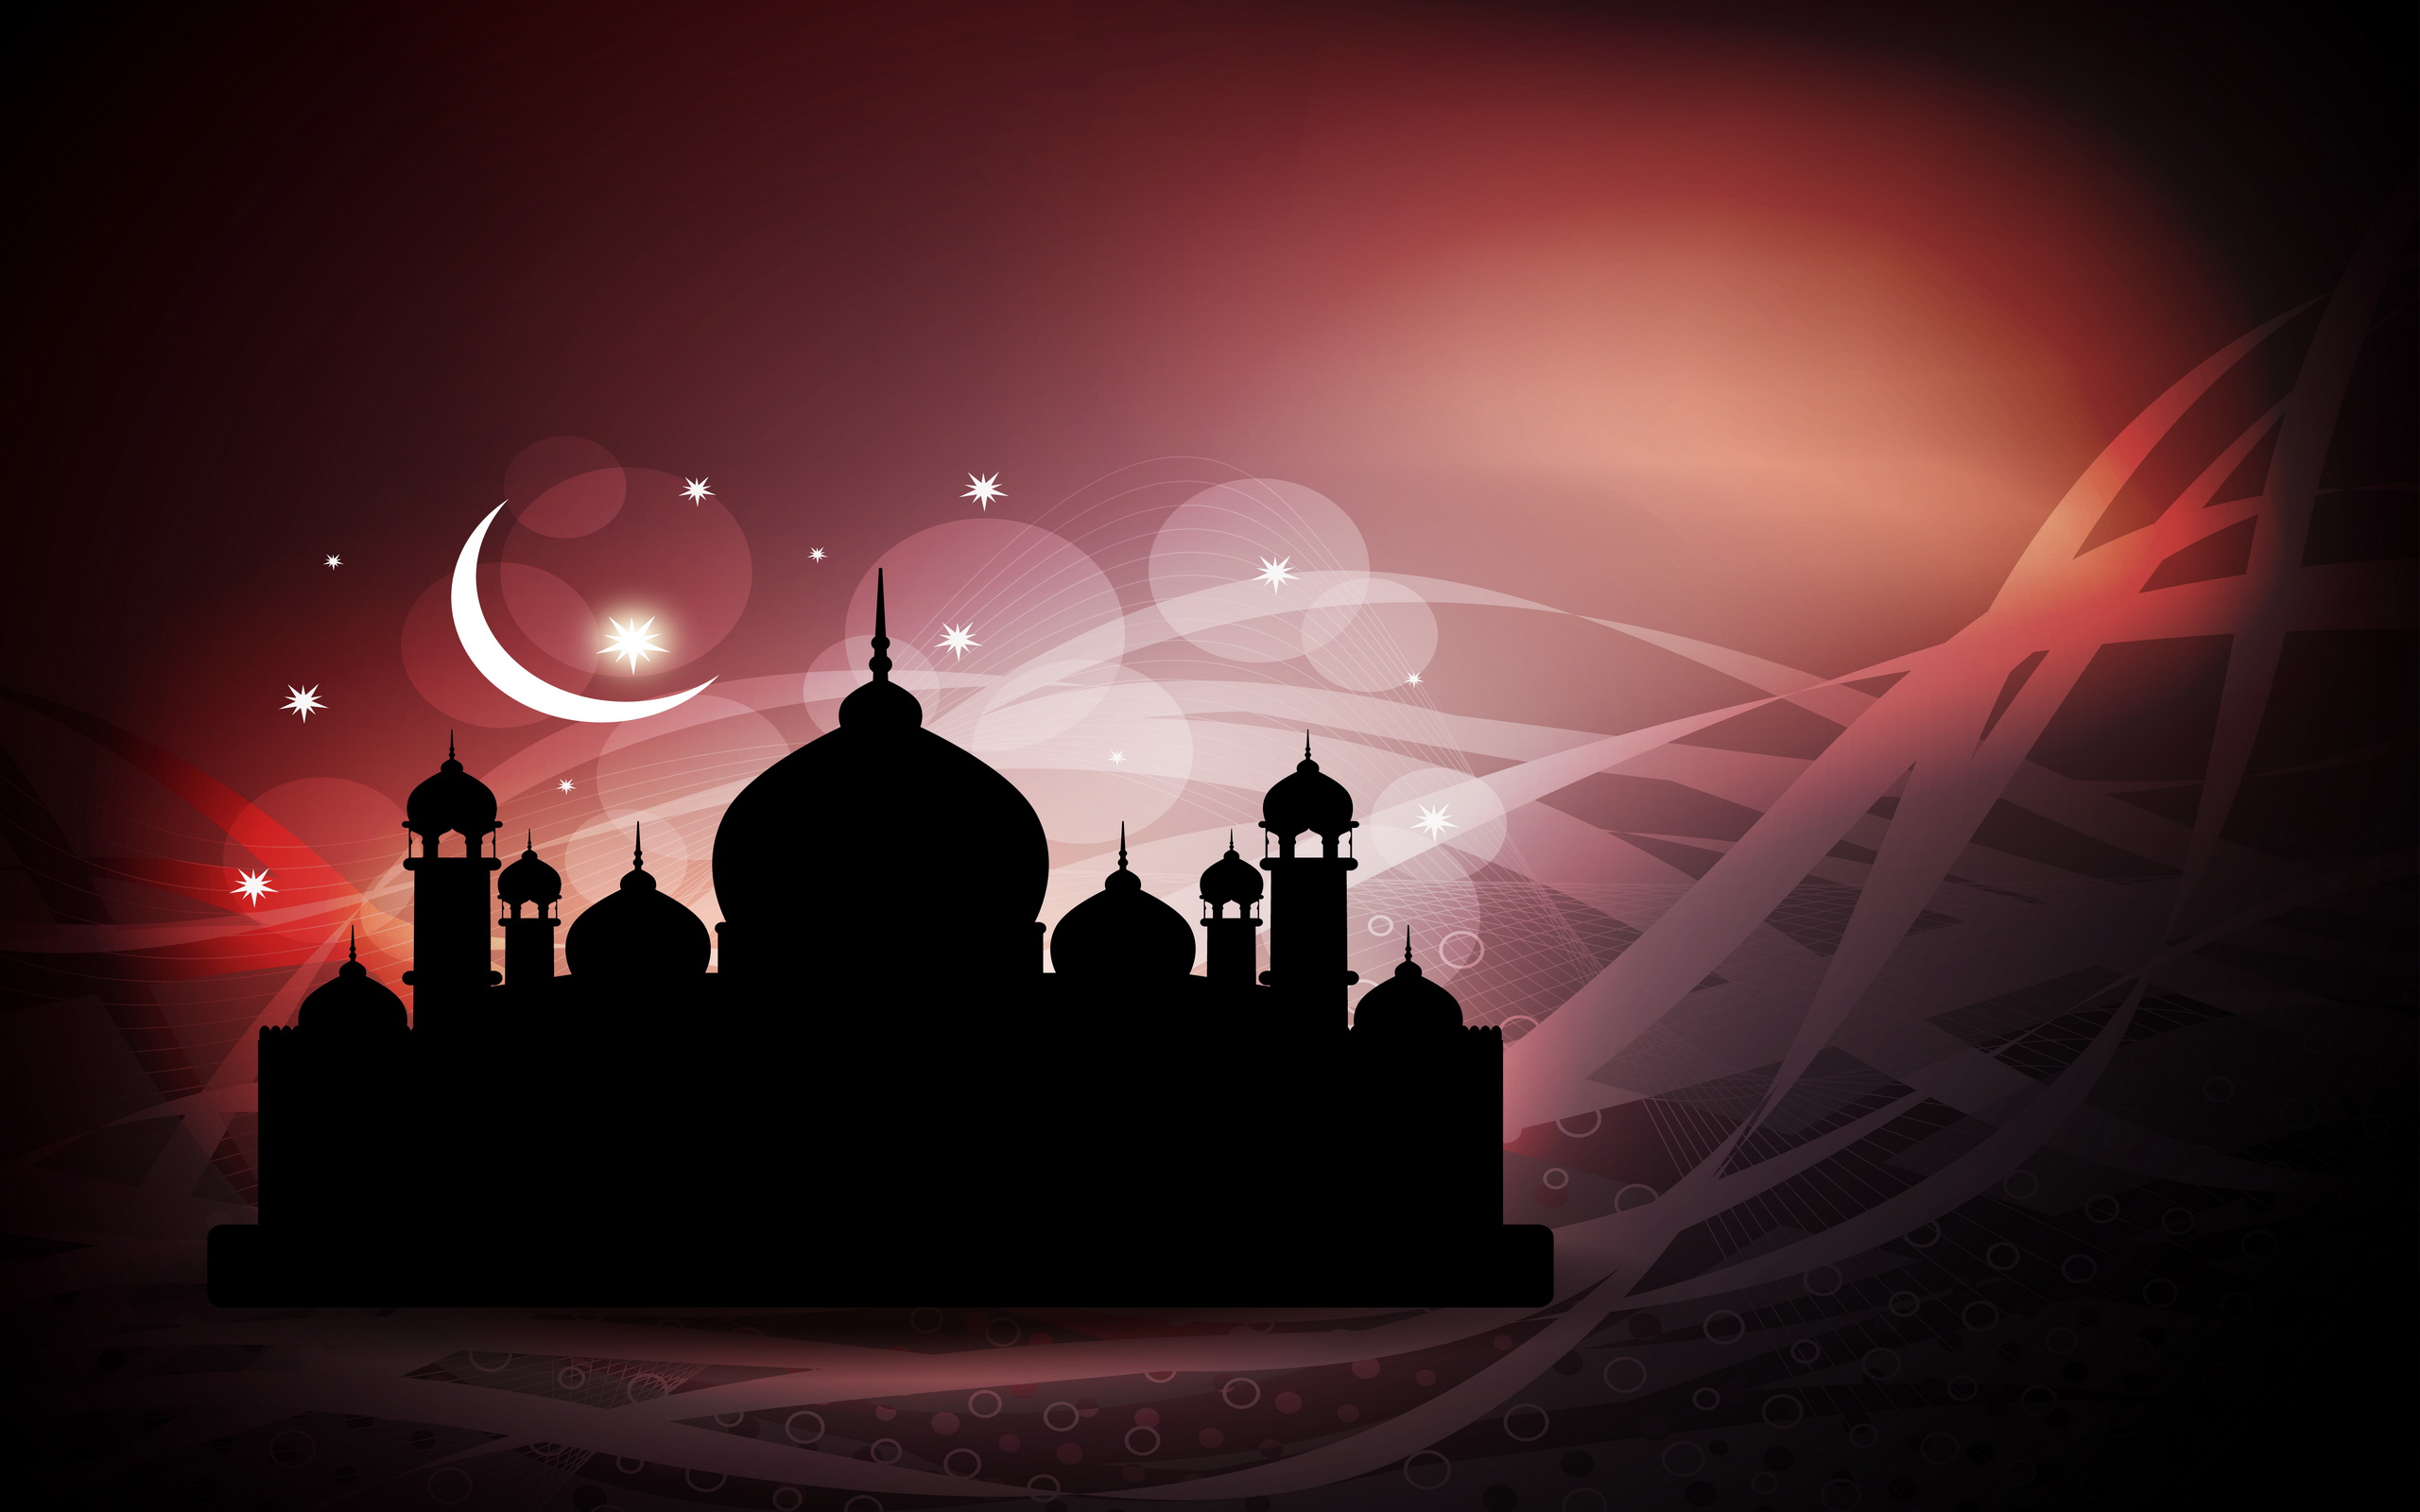 Iphone X Frame Wallpaper Mosque Full Hd Wallpaper And Background Image 2560x1600